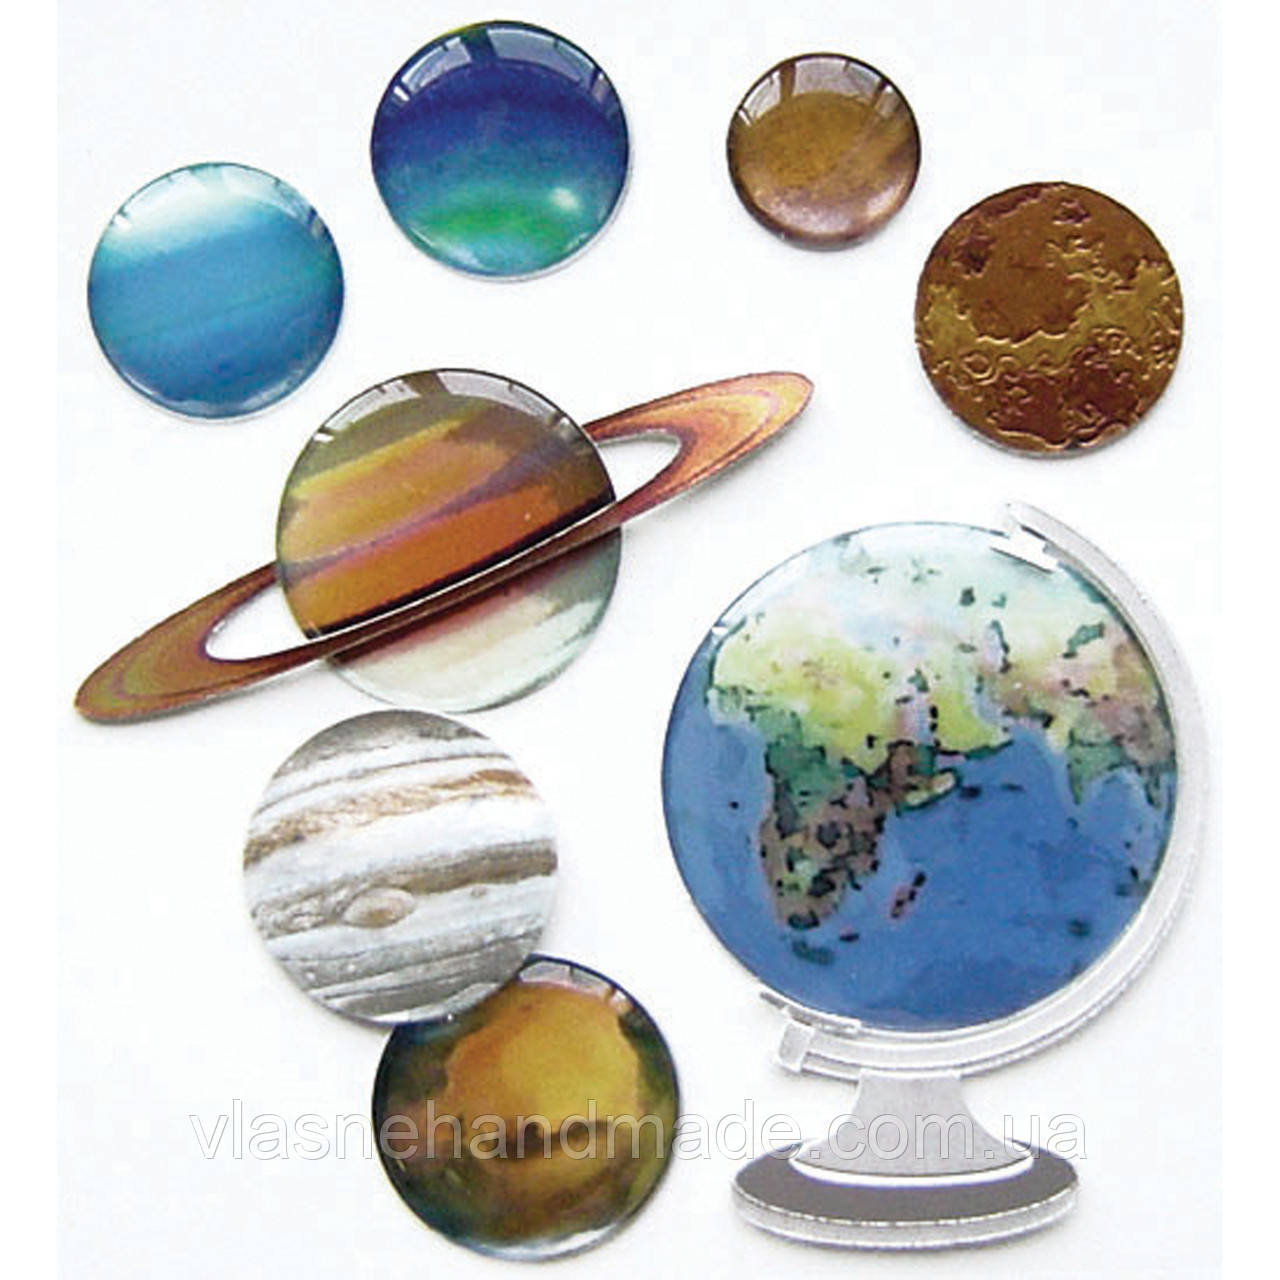 Наклейки 3D GLOBE AND PLANETS - Jolee's Boutique - 11 шт.